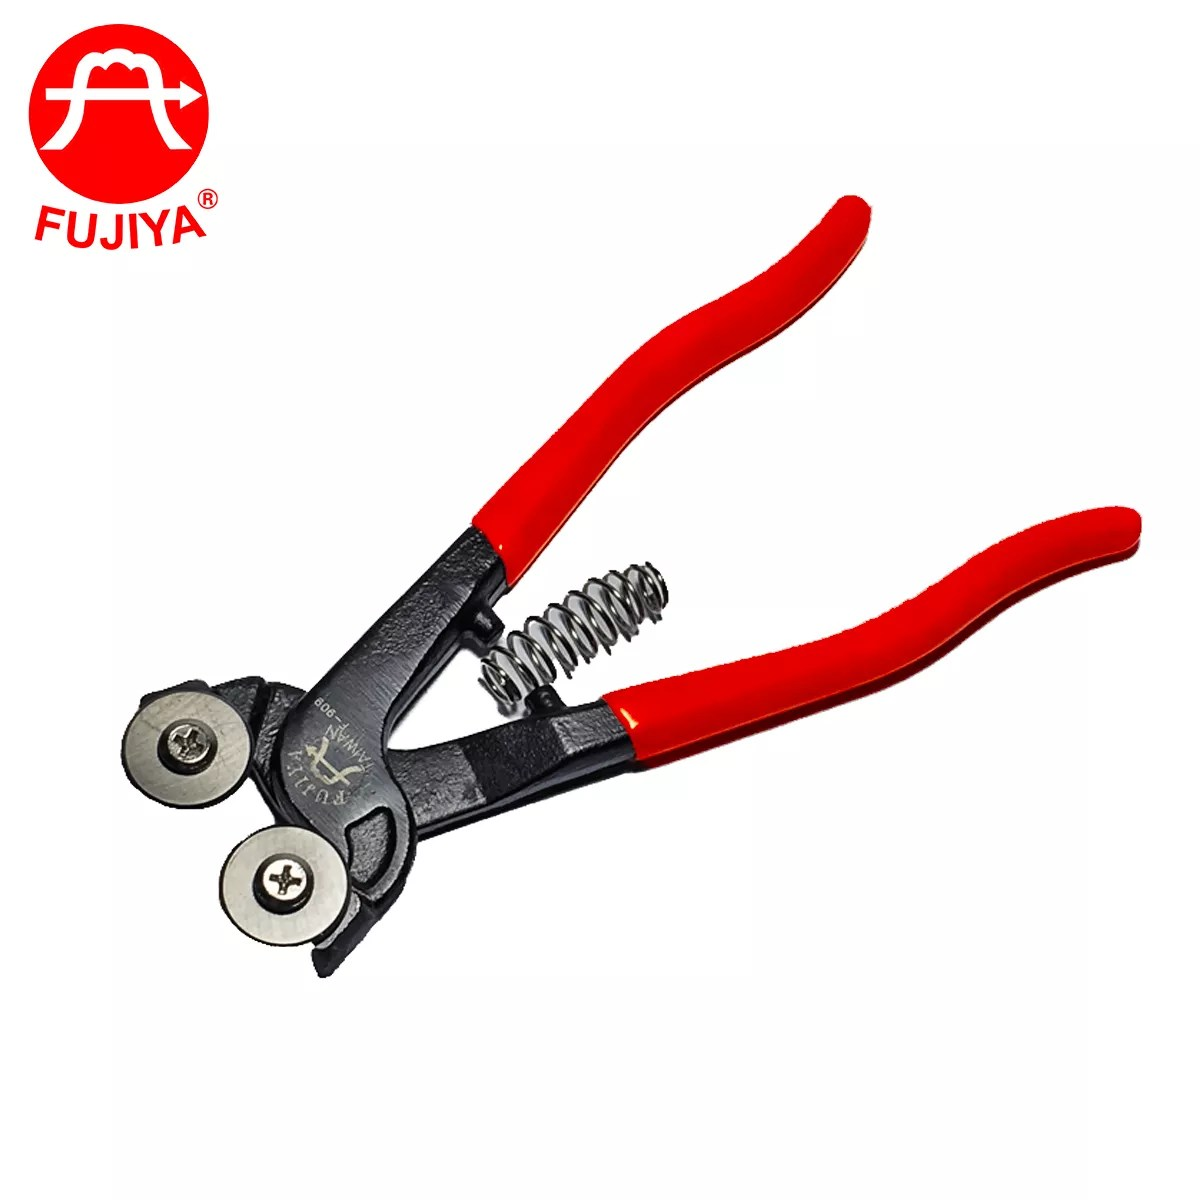 home depot tile nippers for glass ceramic mosaic terrazzo l tungsten carbide cutting blades l s55c high carbon steel l buy tile nippers how to use glass home depot lowes mosaic